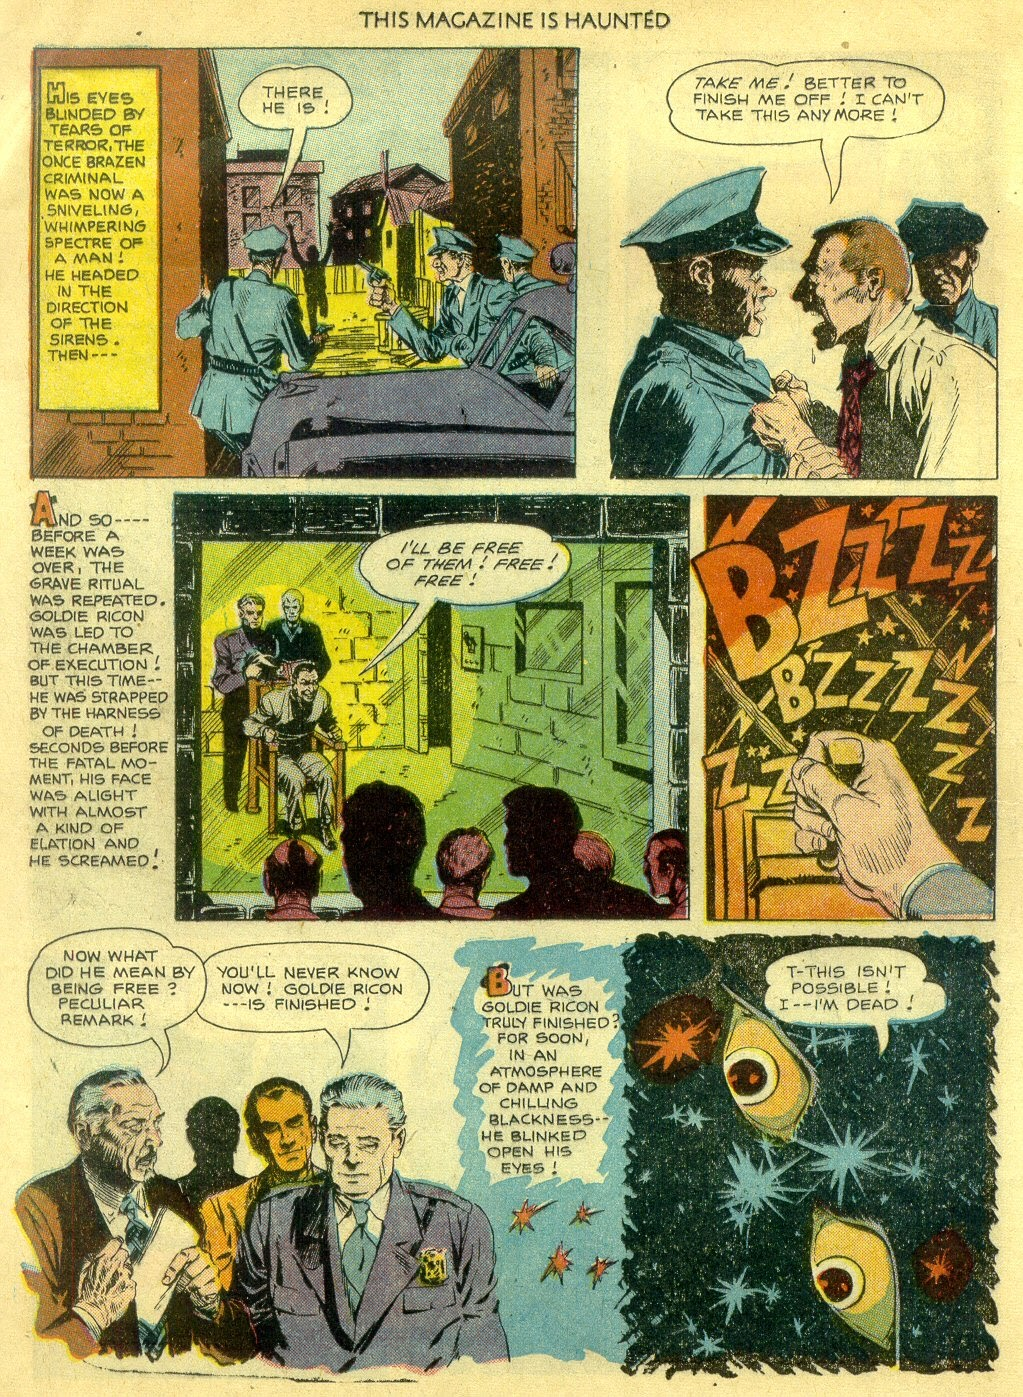 Read online This Magazine Is Haunted comic -  Issue #5 - 11